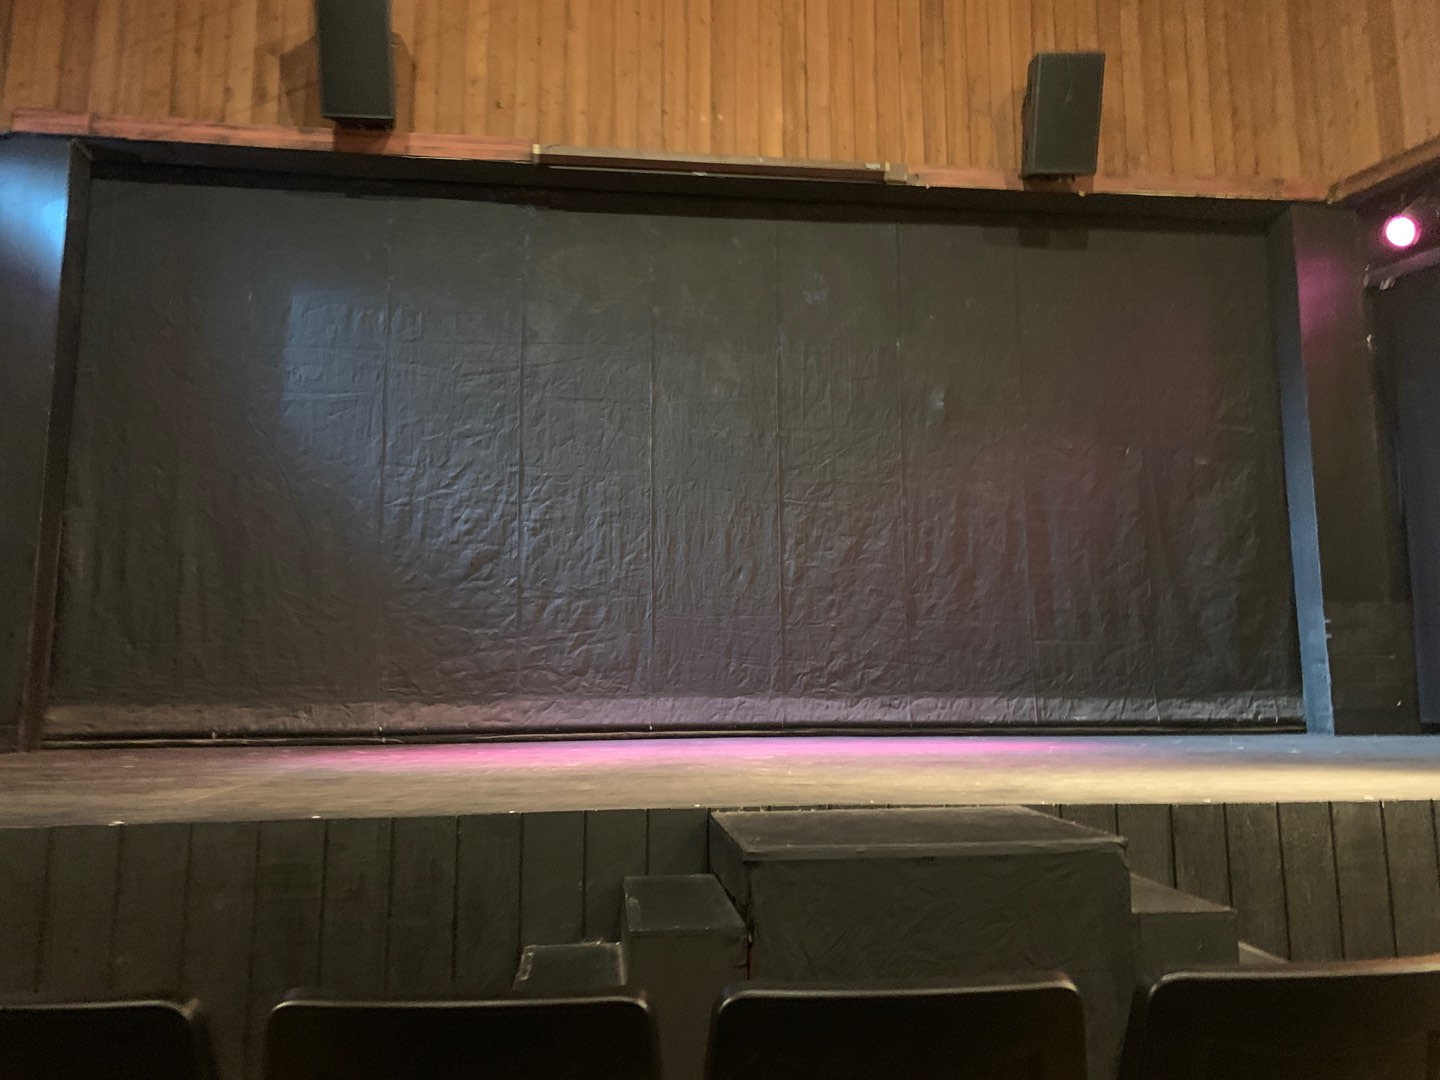 Morgan-Wixson Theatre Section N/A Row C Seat 105